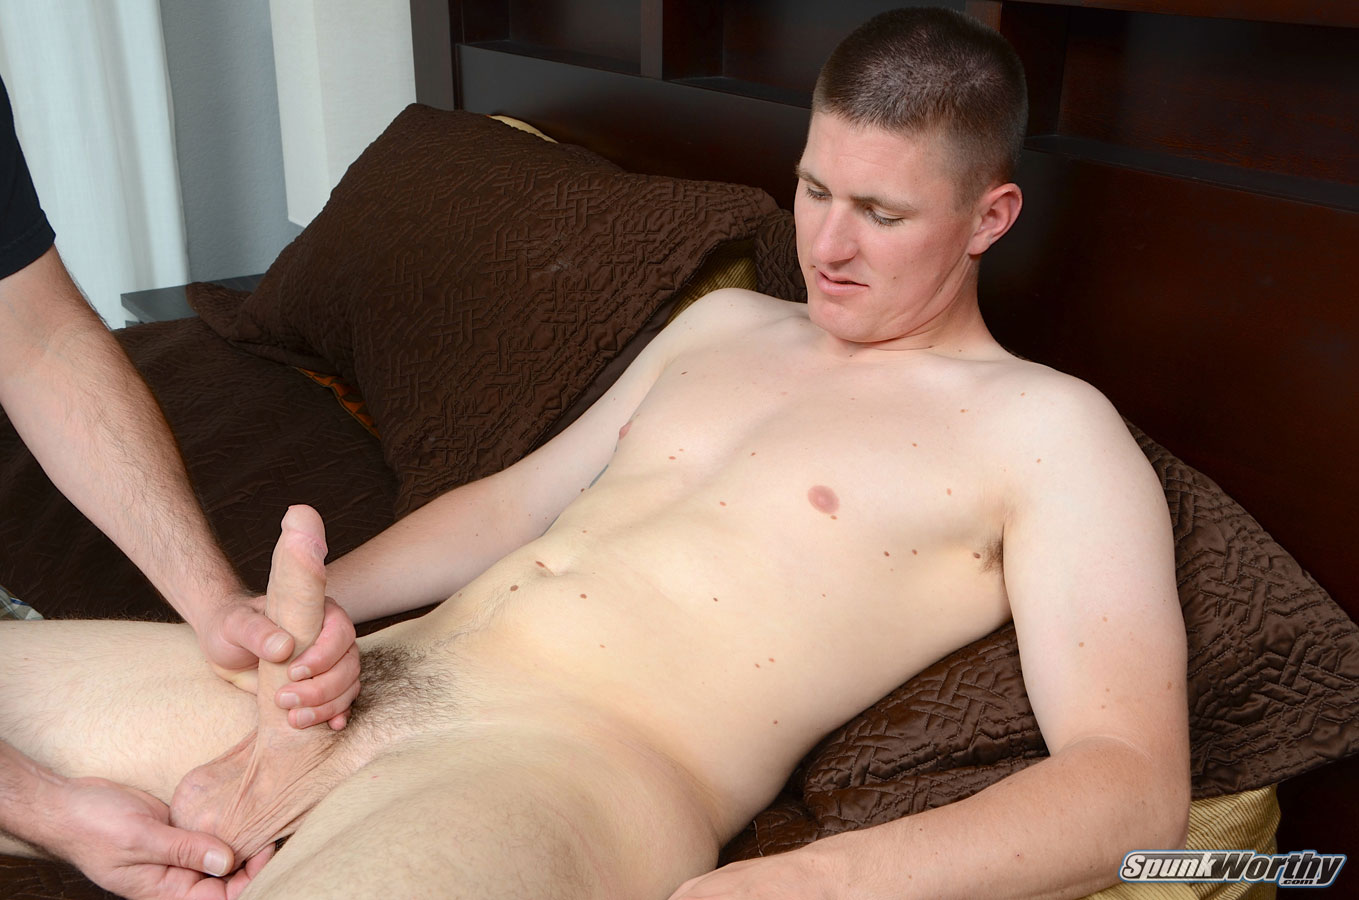 Straight guys handjob gallery gay xxx 9